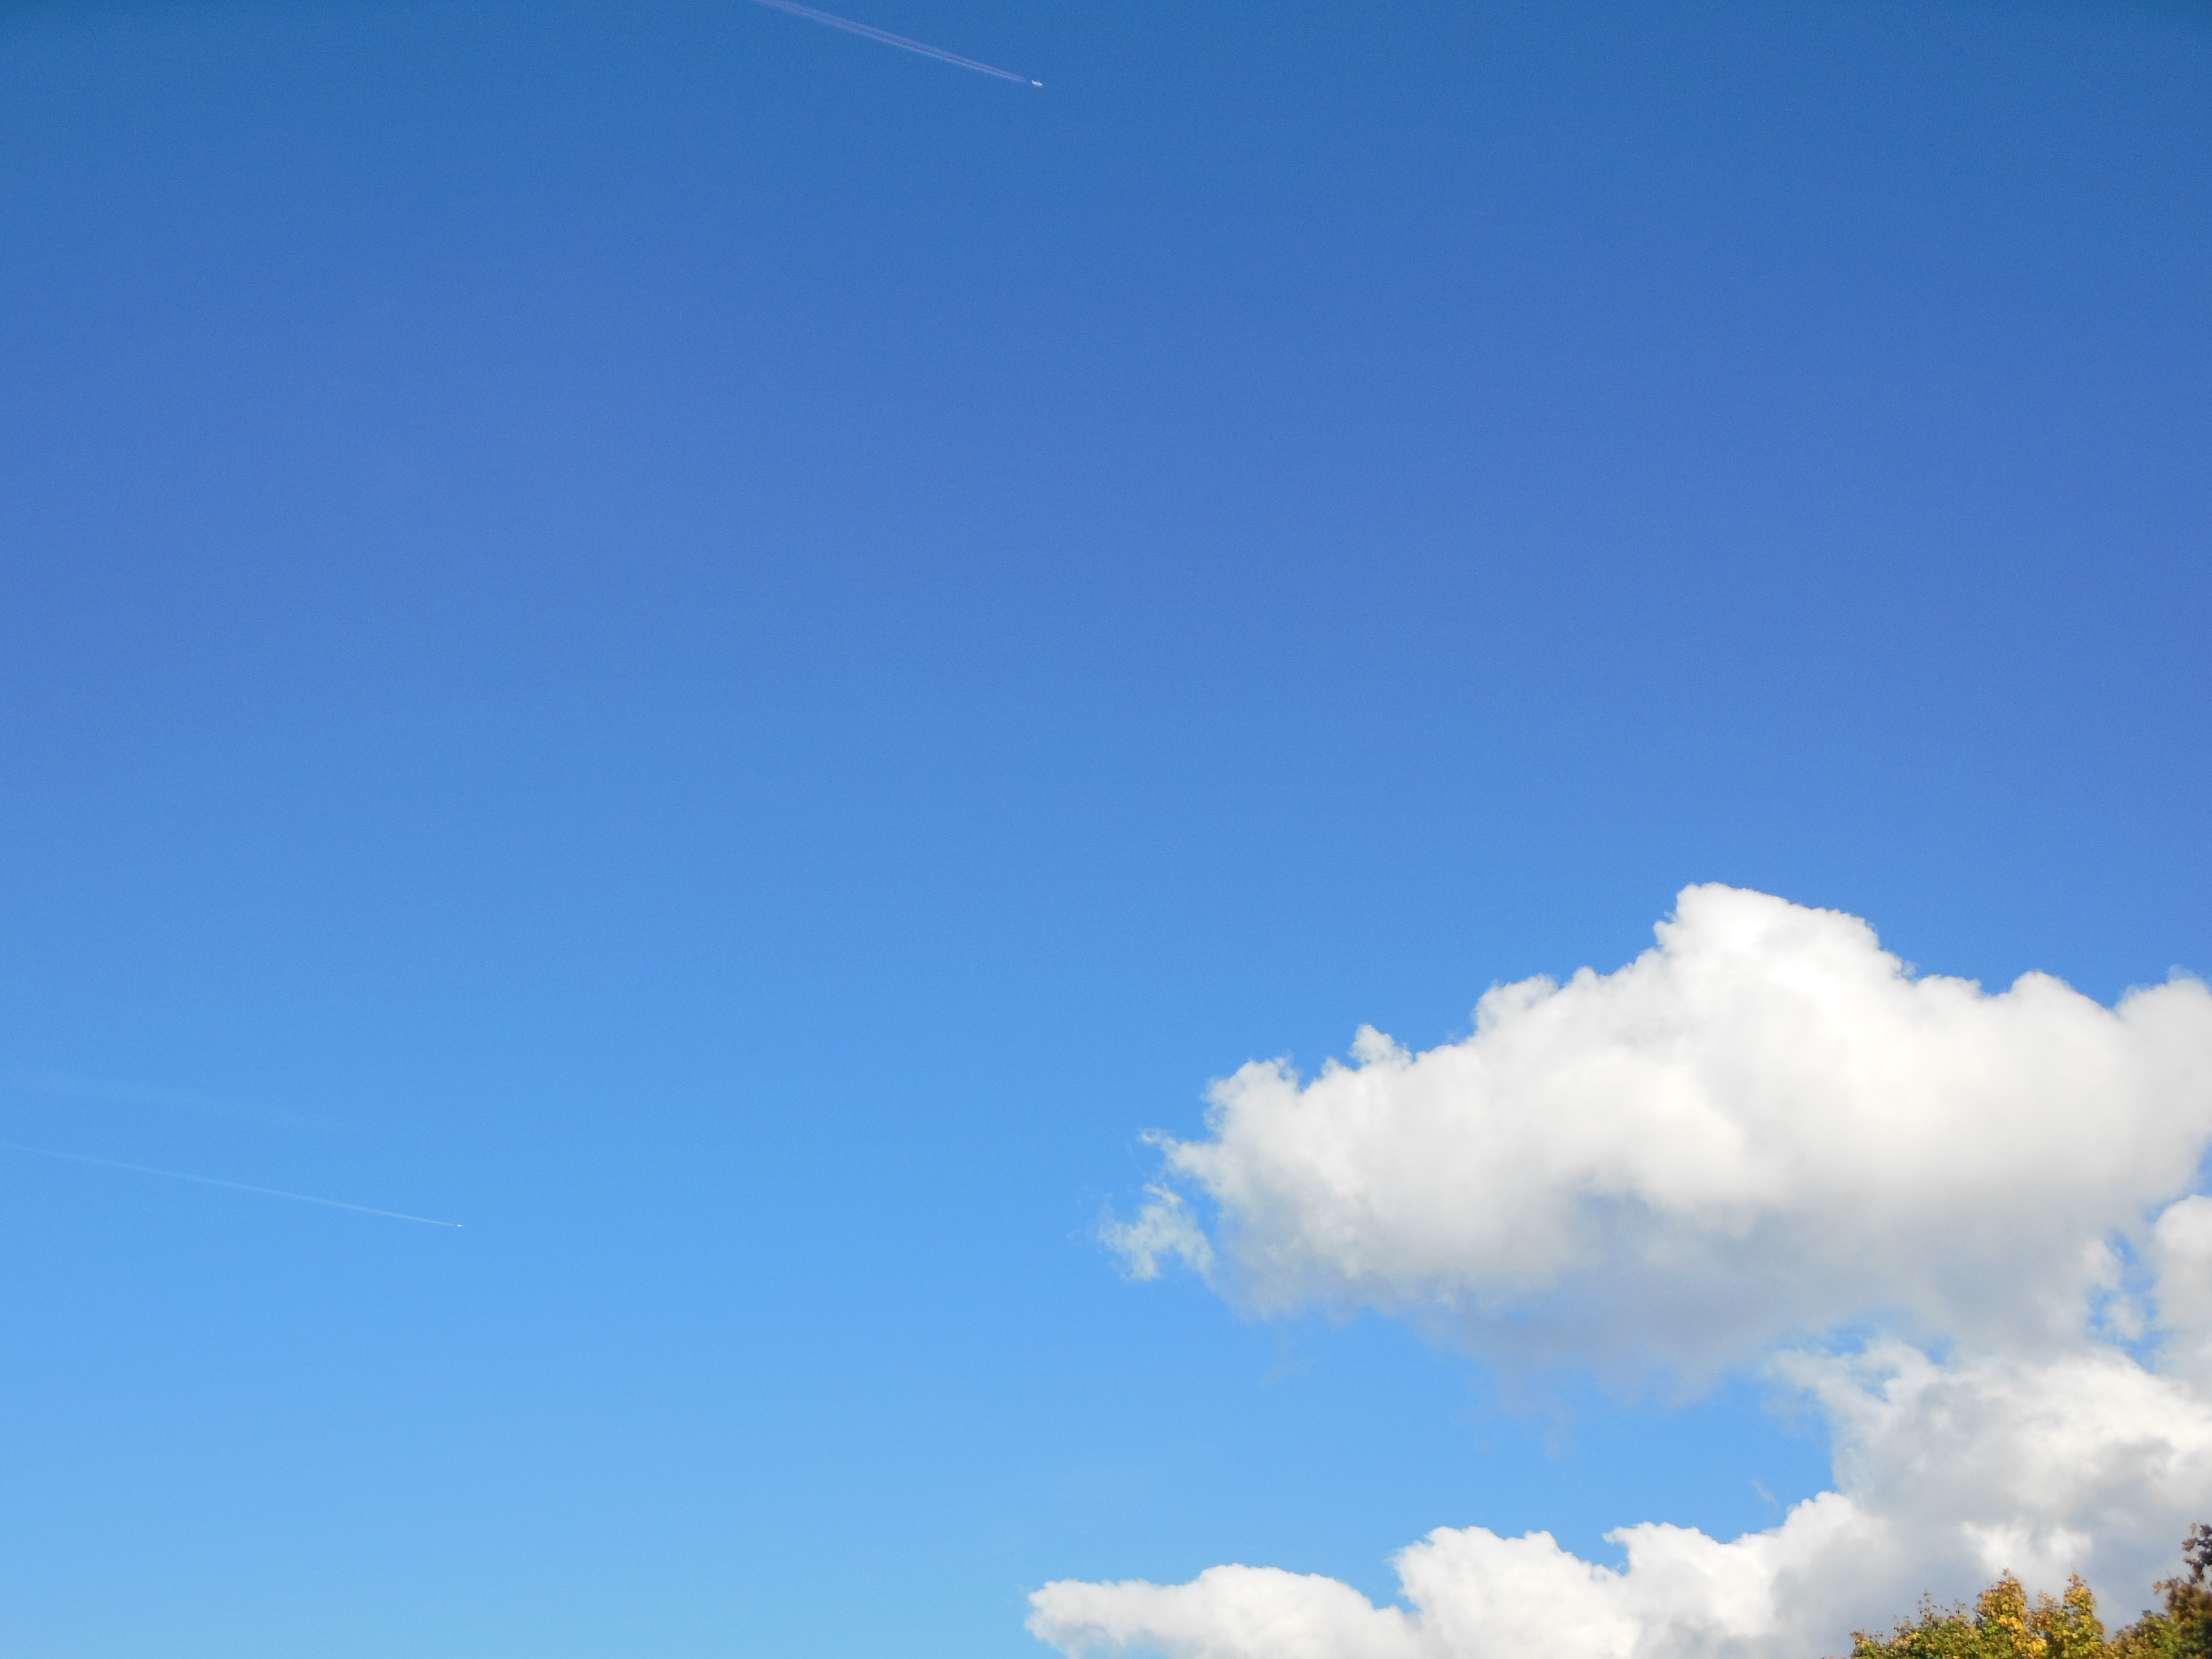 File:Blue sky and clouds.jpg - Wikimedia Commons